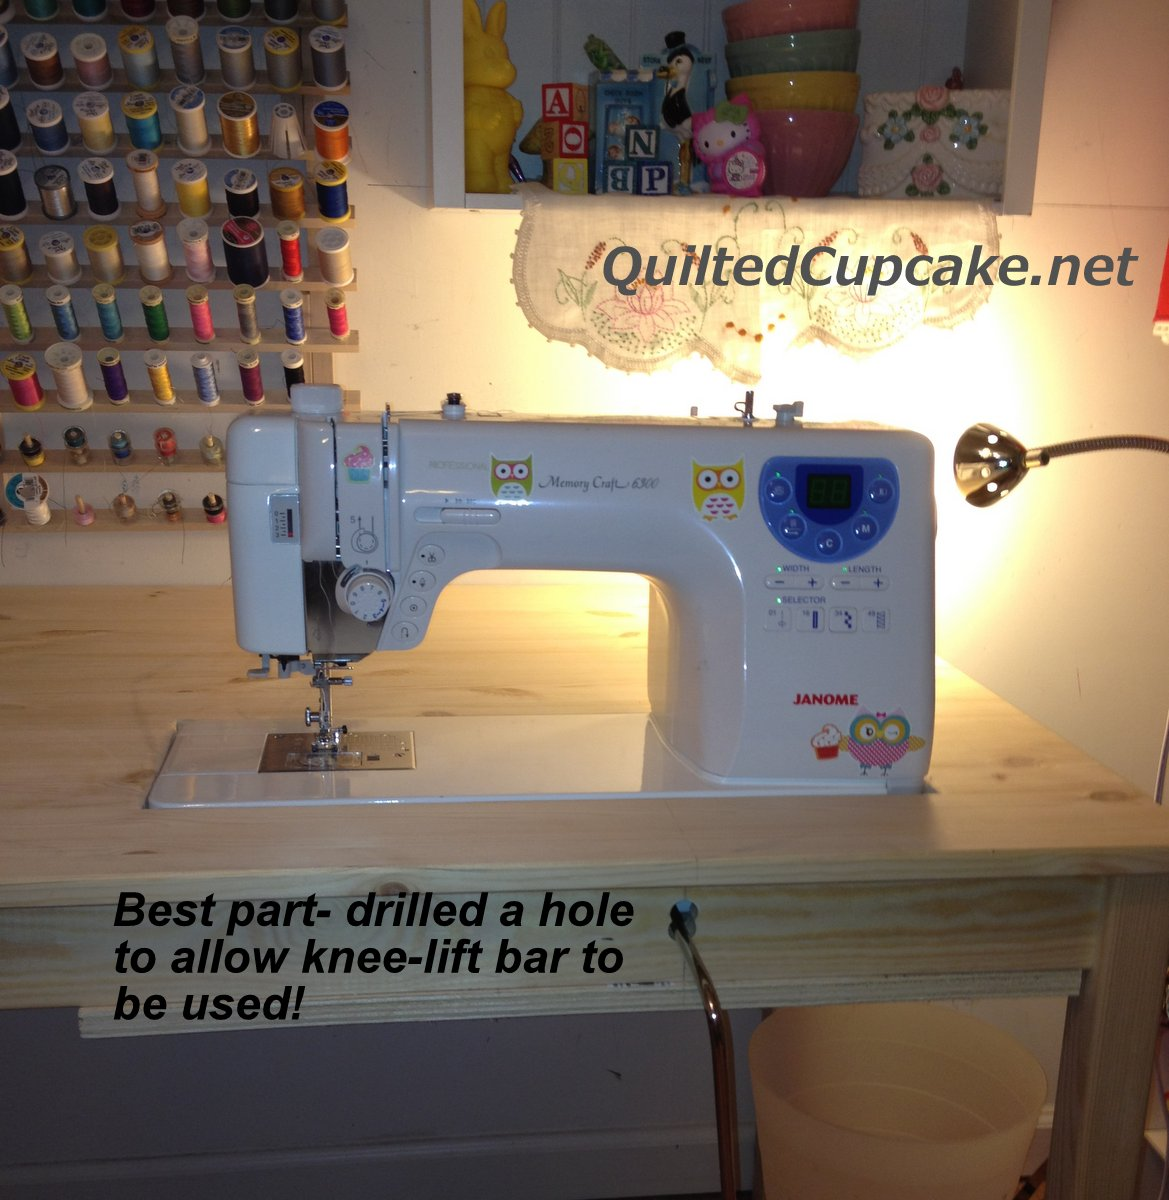 Quilted Cupcake